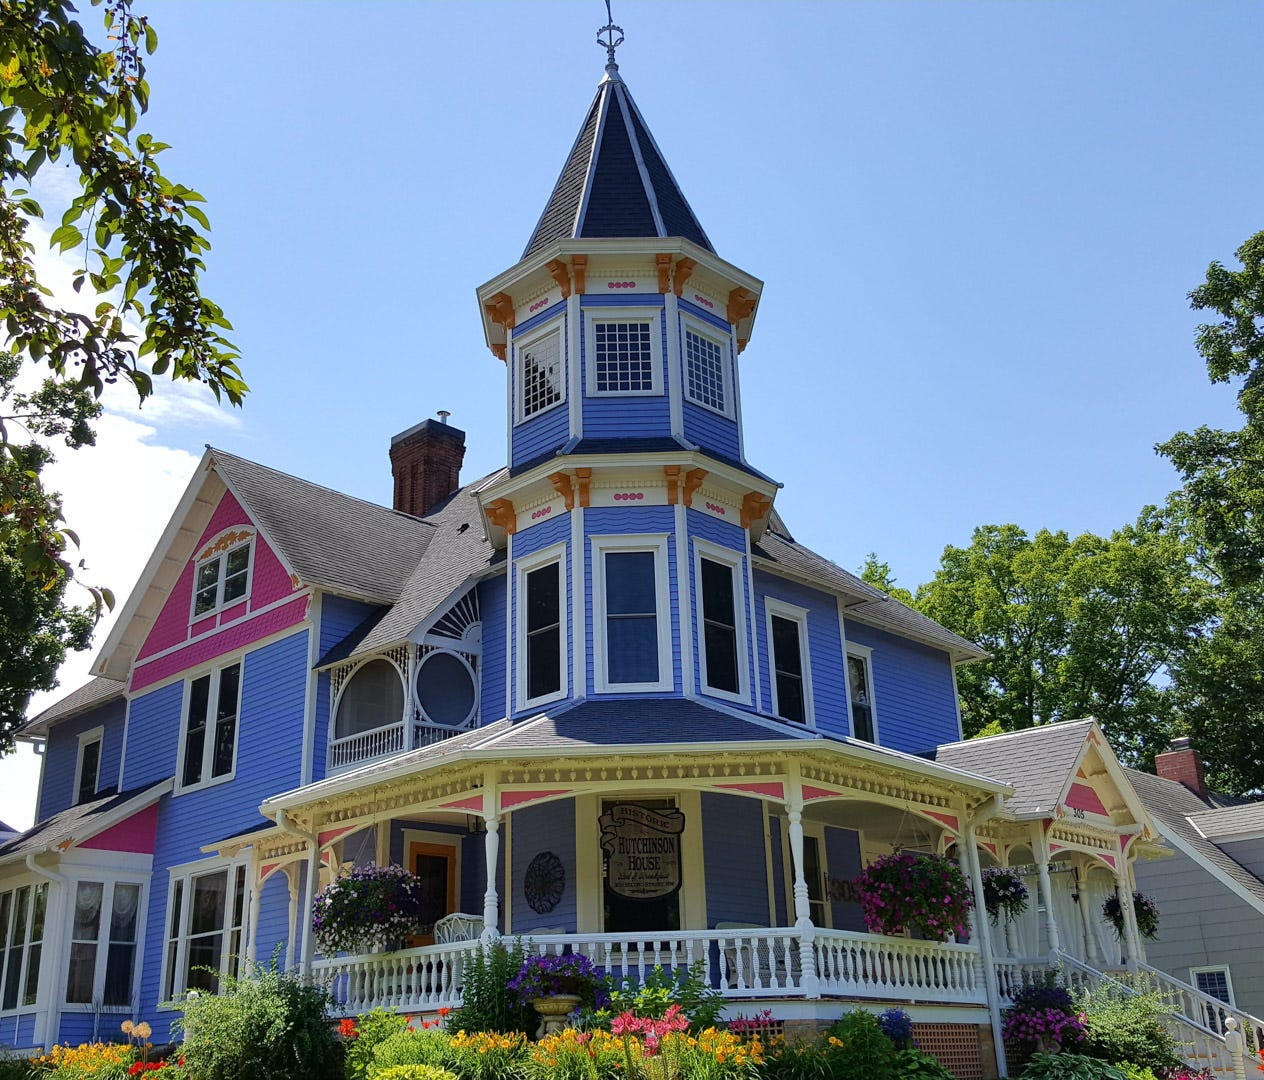 Minnesota: Historic Hutchinson House B&B in Faribault (Price: $169/night): This 1892 Queen Anne Victorian is listed on the National Register of Historical Places but has been updated with plenty of modern conveniences — like WiFi and cable TV — to en